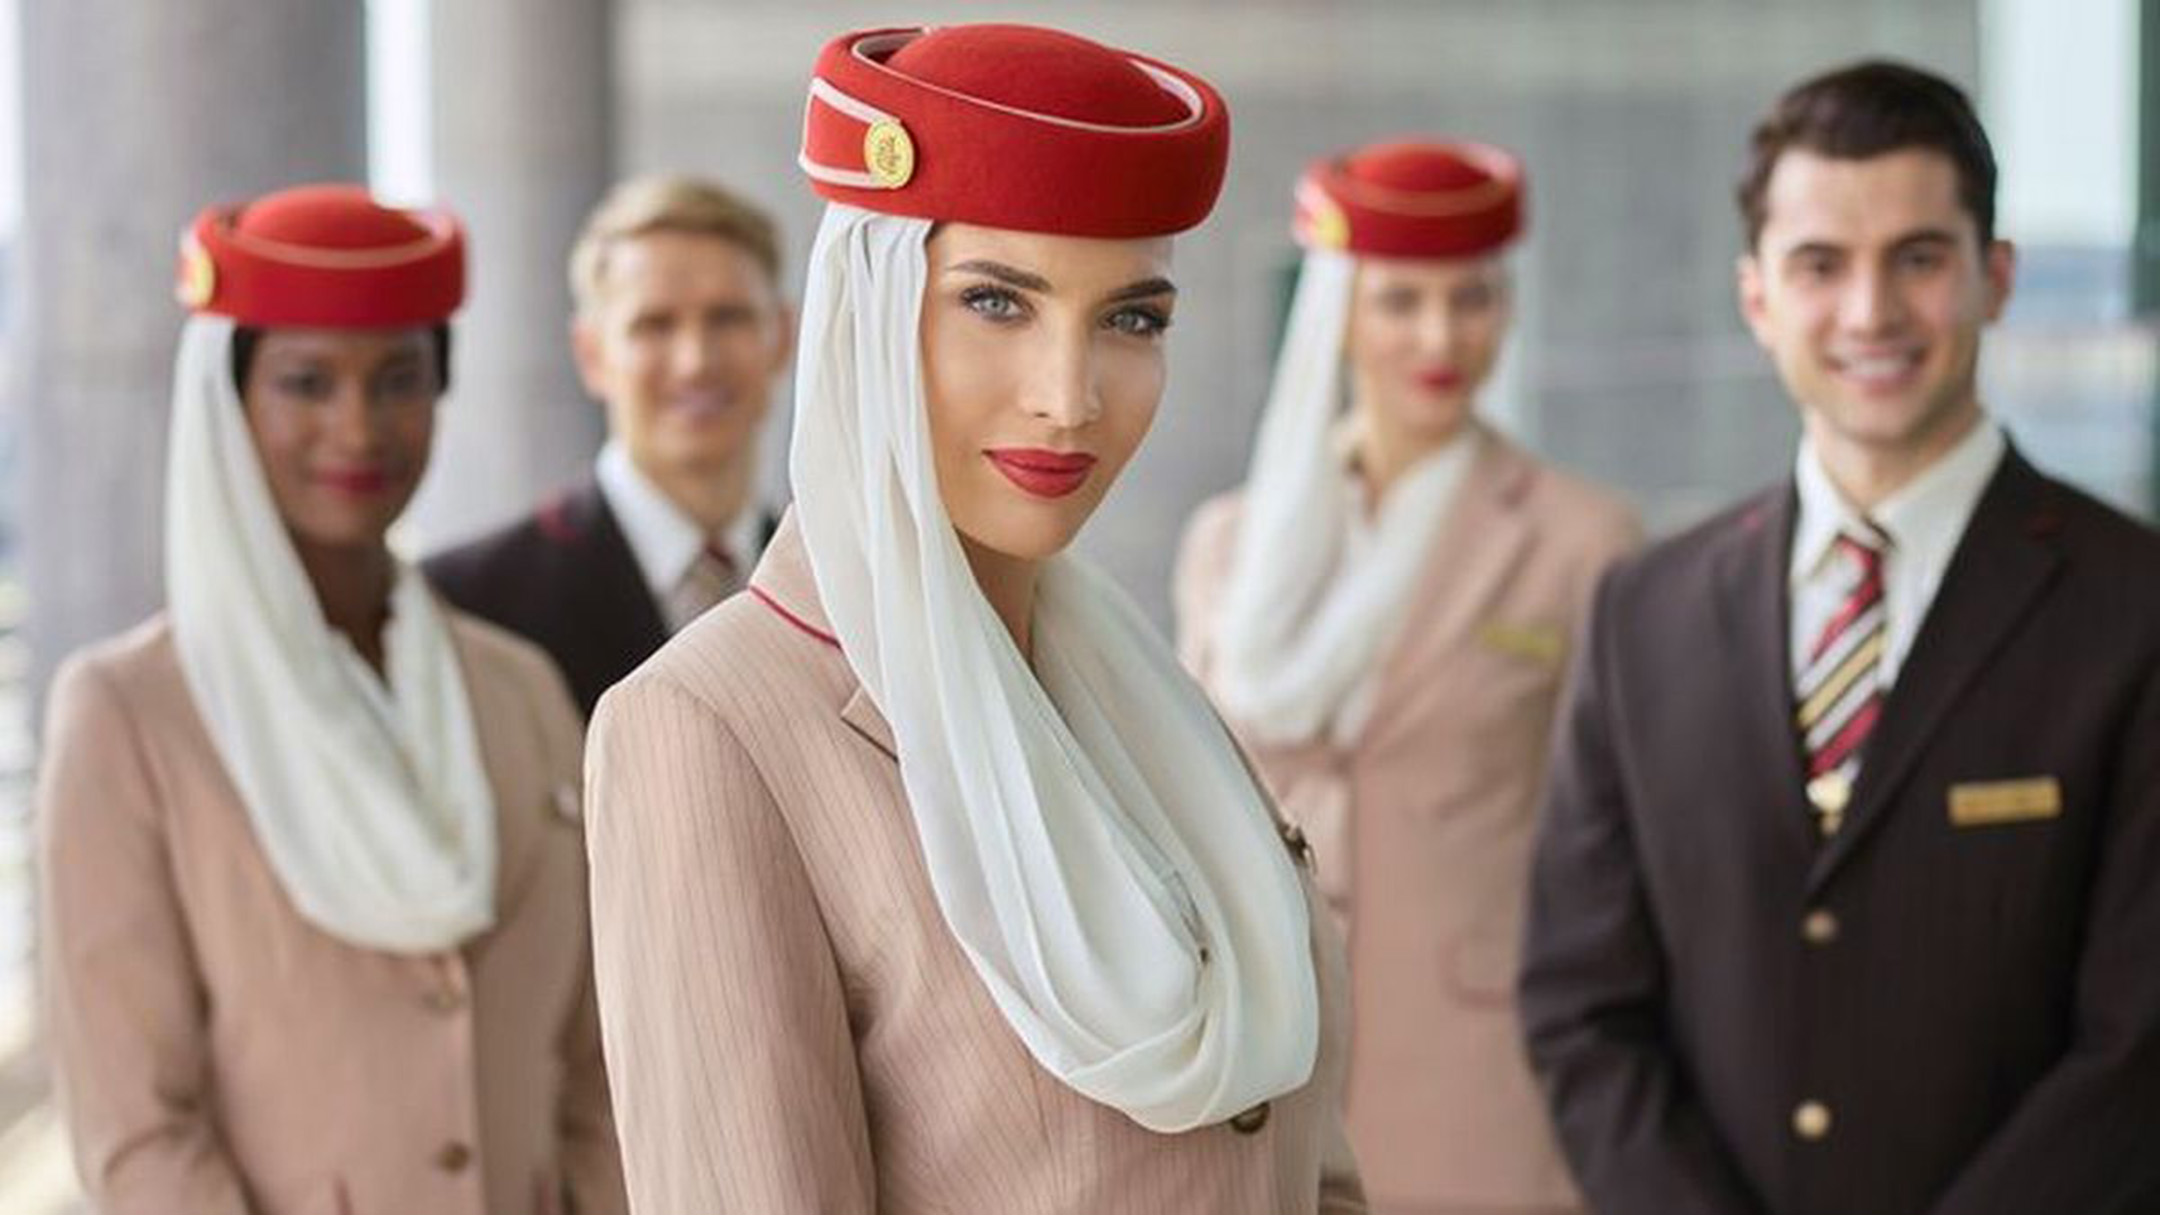 Emirates gears up for busy summer holiday travel period